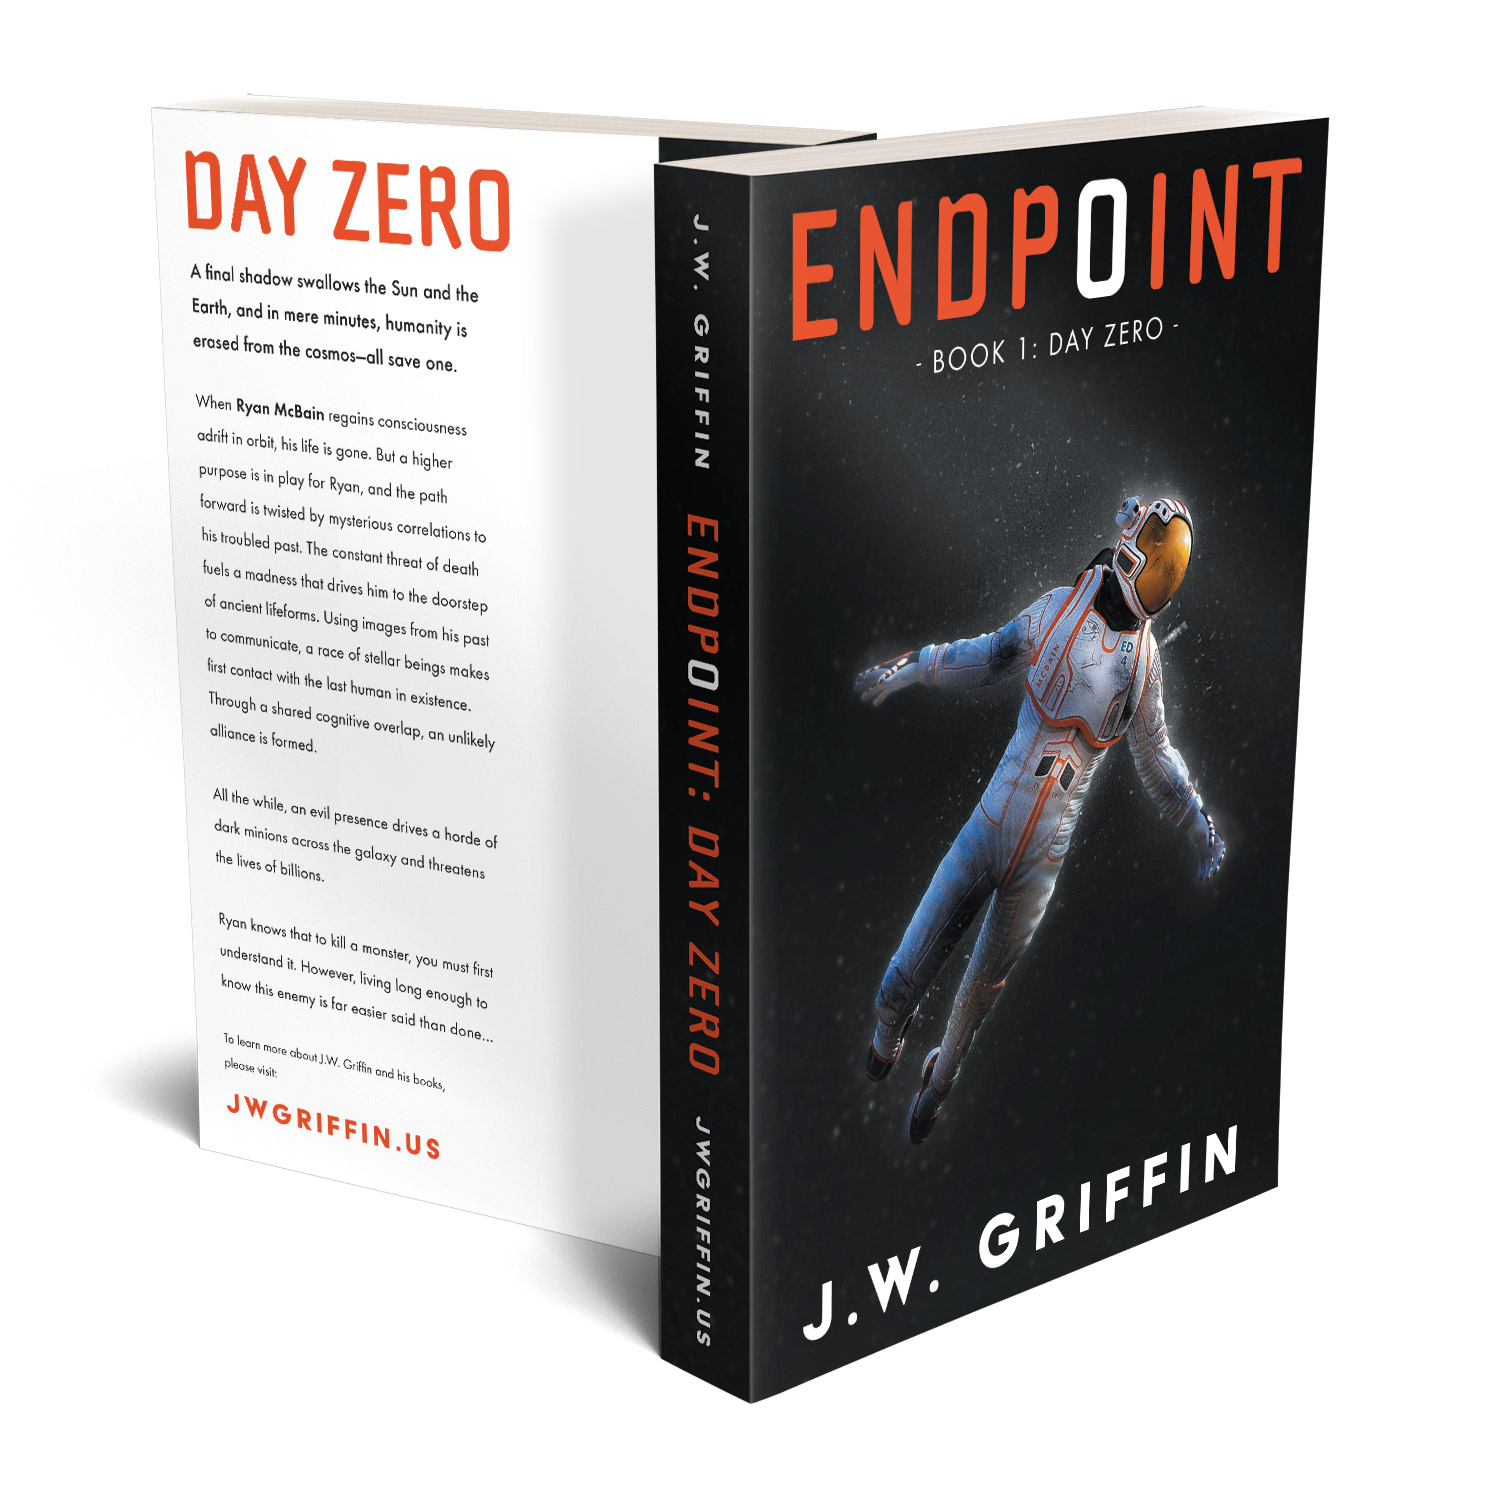 The Endpoint Series is a fantastic character-led hard sci-fi series. The author is JW Griffin. The book cover designs and interior formatting are by Mark Thomas. To learn more about what Mark could do for your book, please visit coverness.com.